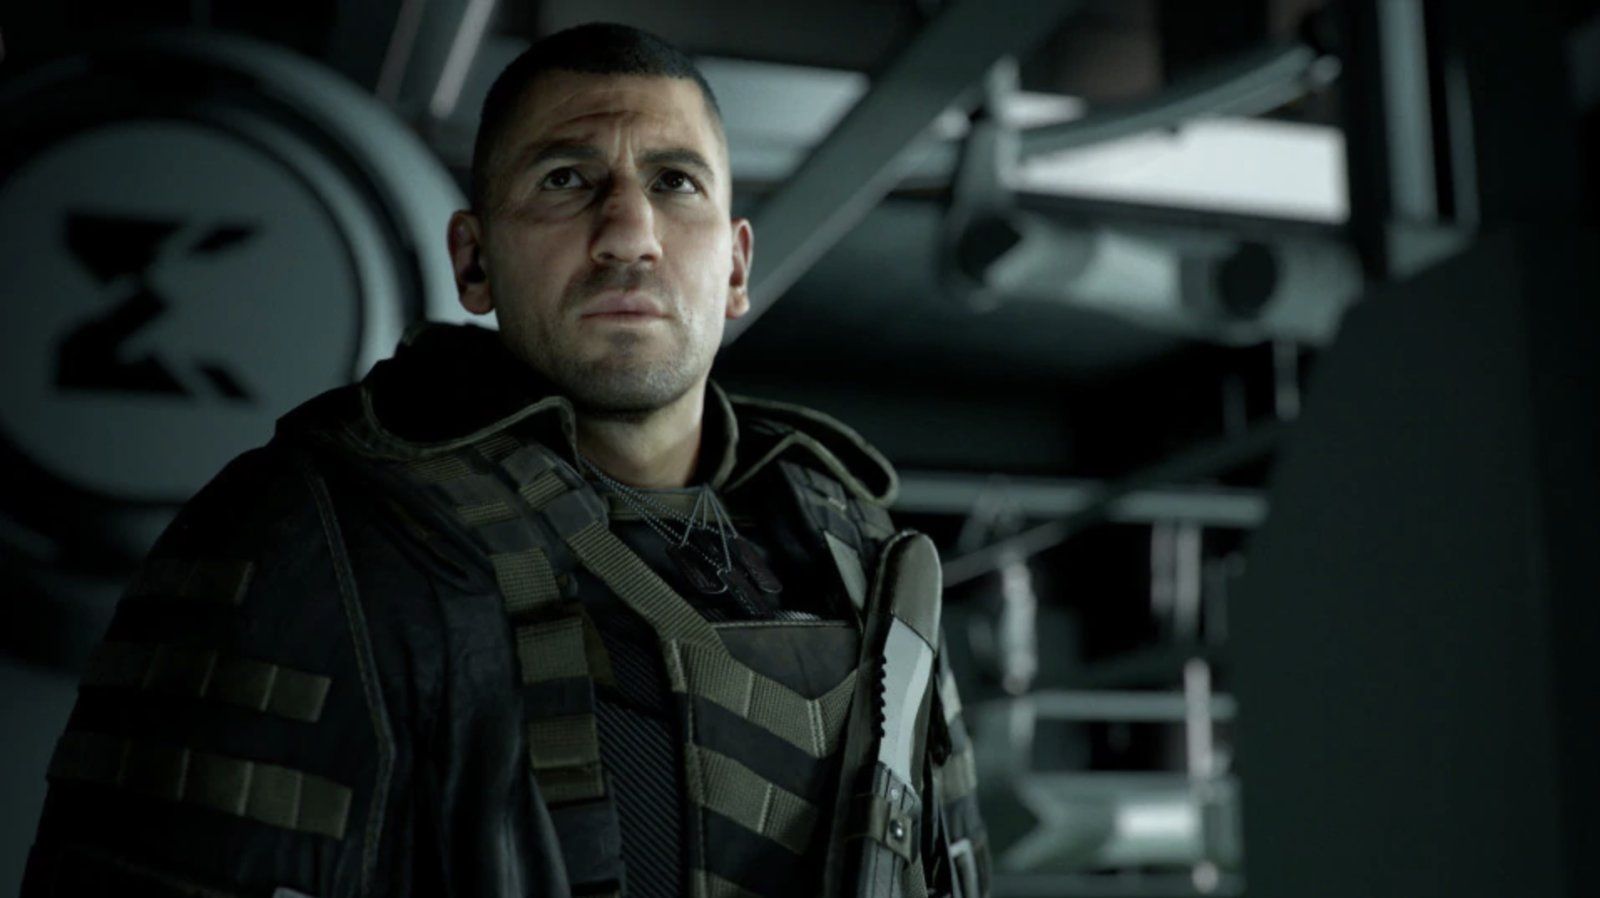 Jon Bernthal is your enemy in 'Ghost Recon Breakpoint' | DeviceDaily.com